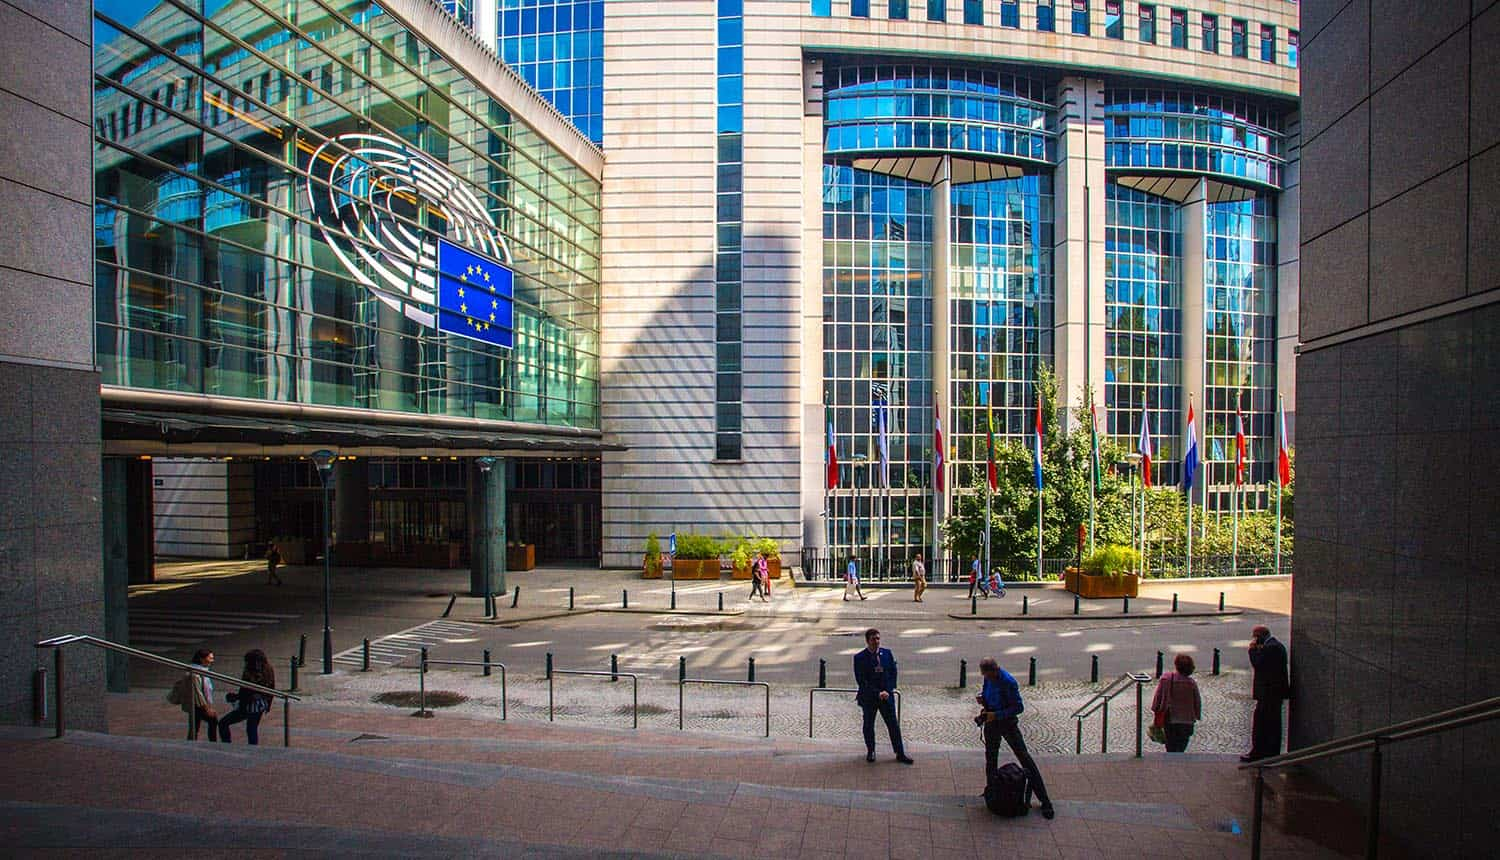 European parliament exterior showing TikTok attempts to address security and privacy concerns